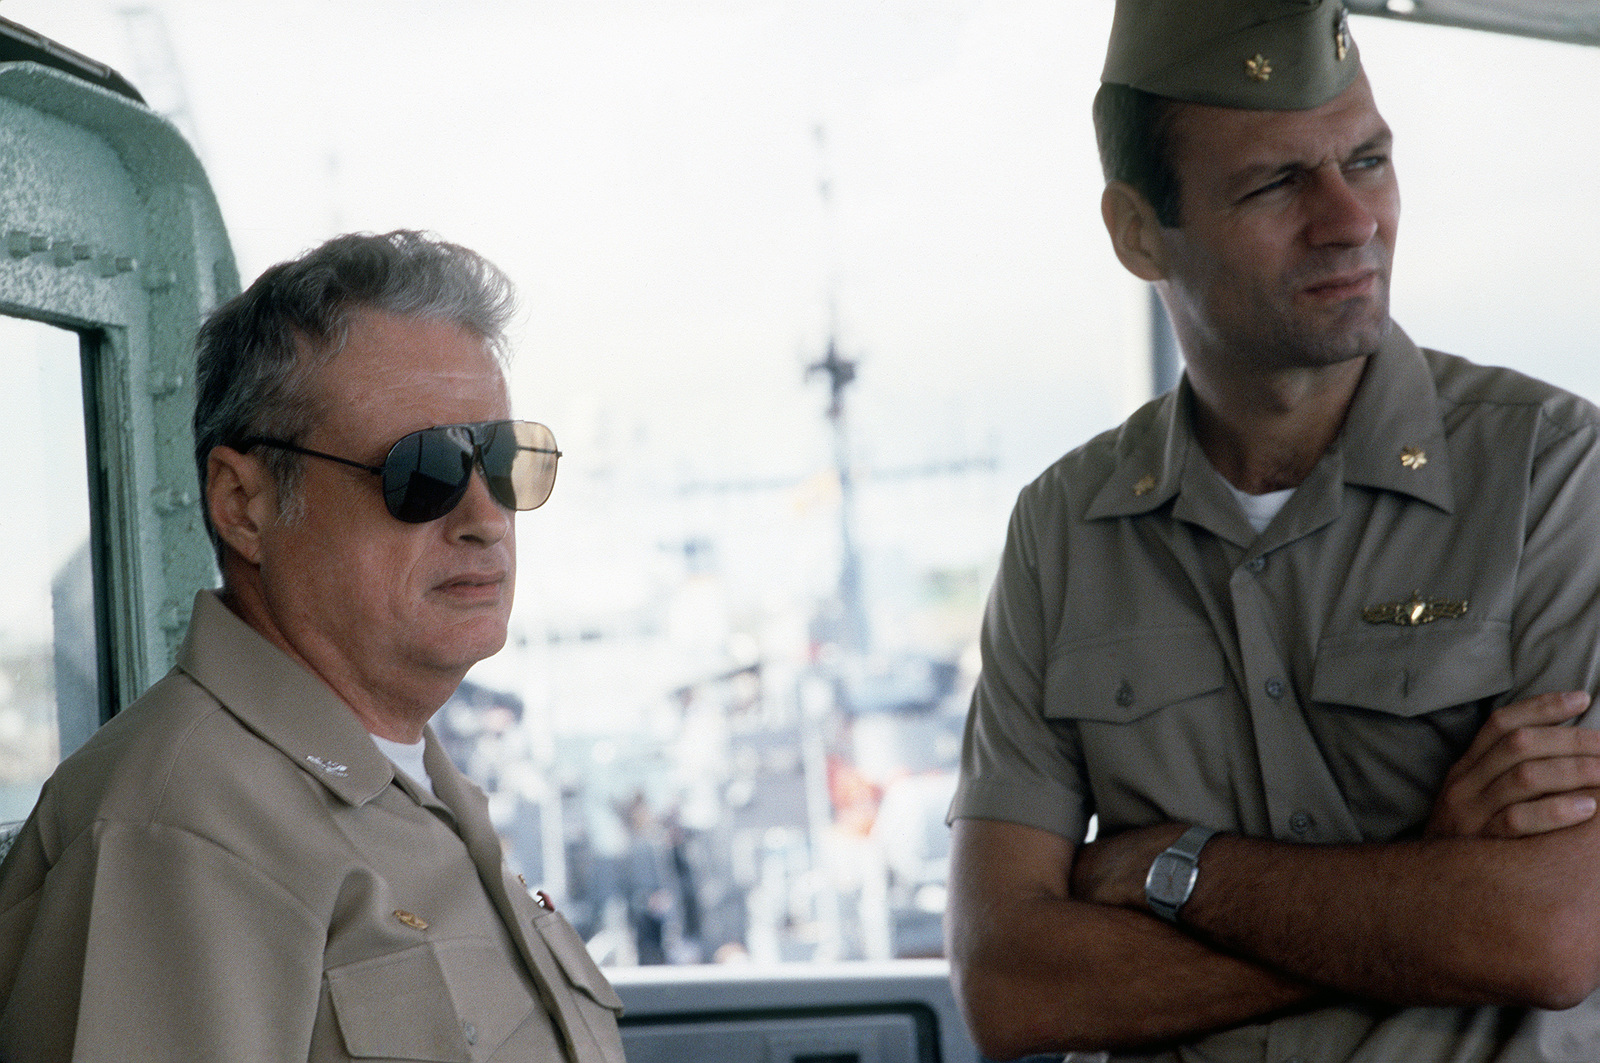 Captain (CAPT) Joseph Volpe and Lieutenant Commander (LCDR) William E. Jackson discuss towing operations being conducted by the salvage ship USS GRAPPLE (ARS 53). The GRAPPLE is towing three minesweepers to the Persian Gulf to support US Navy escort operations